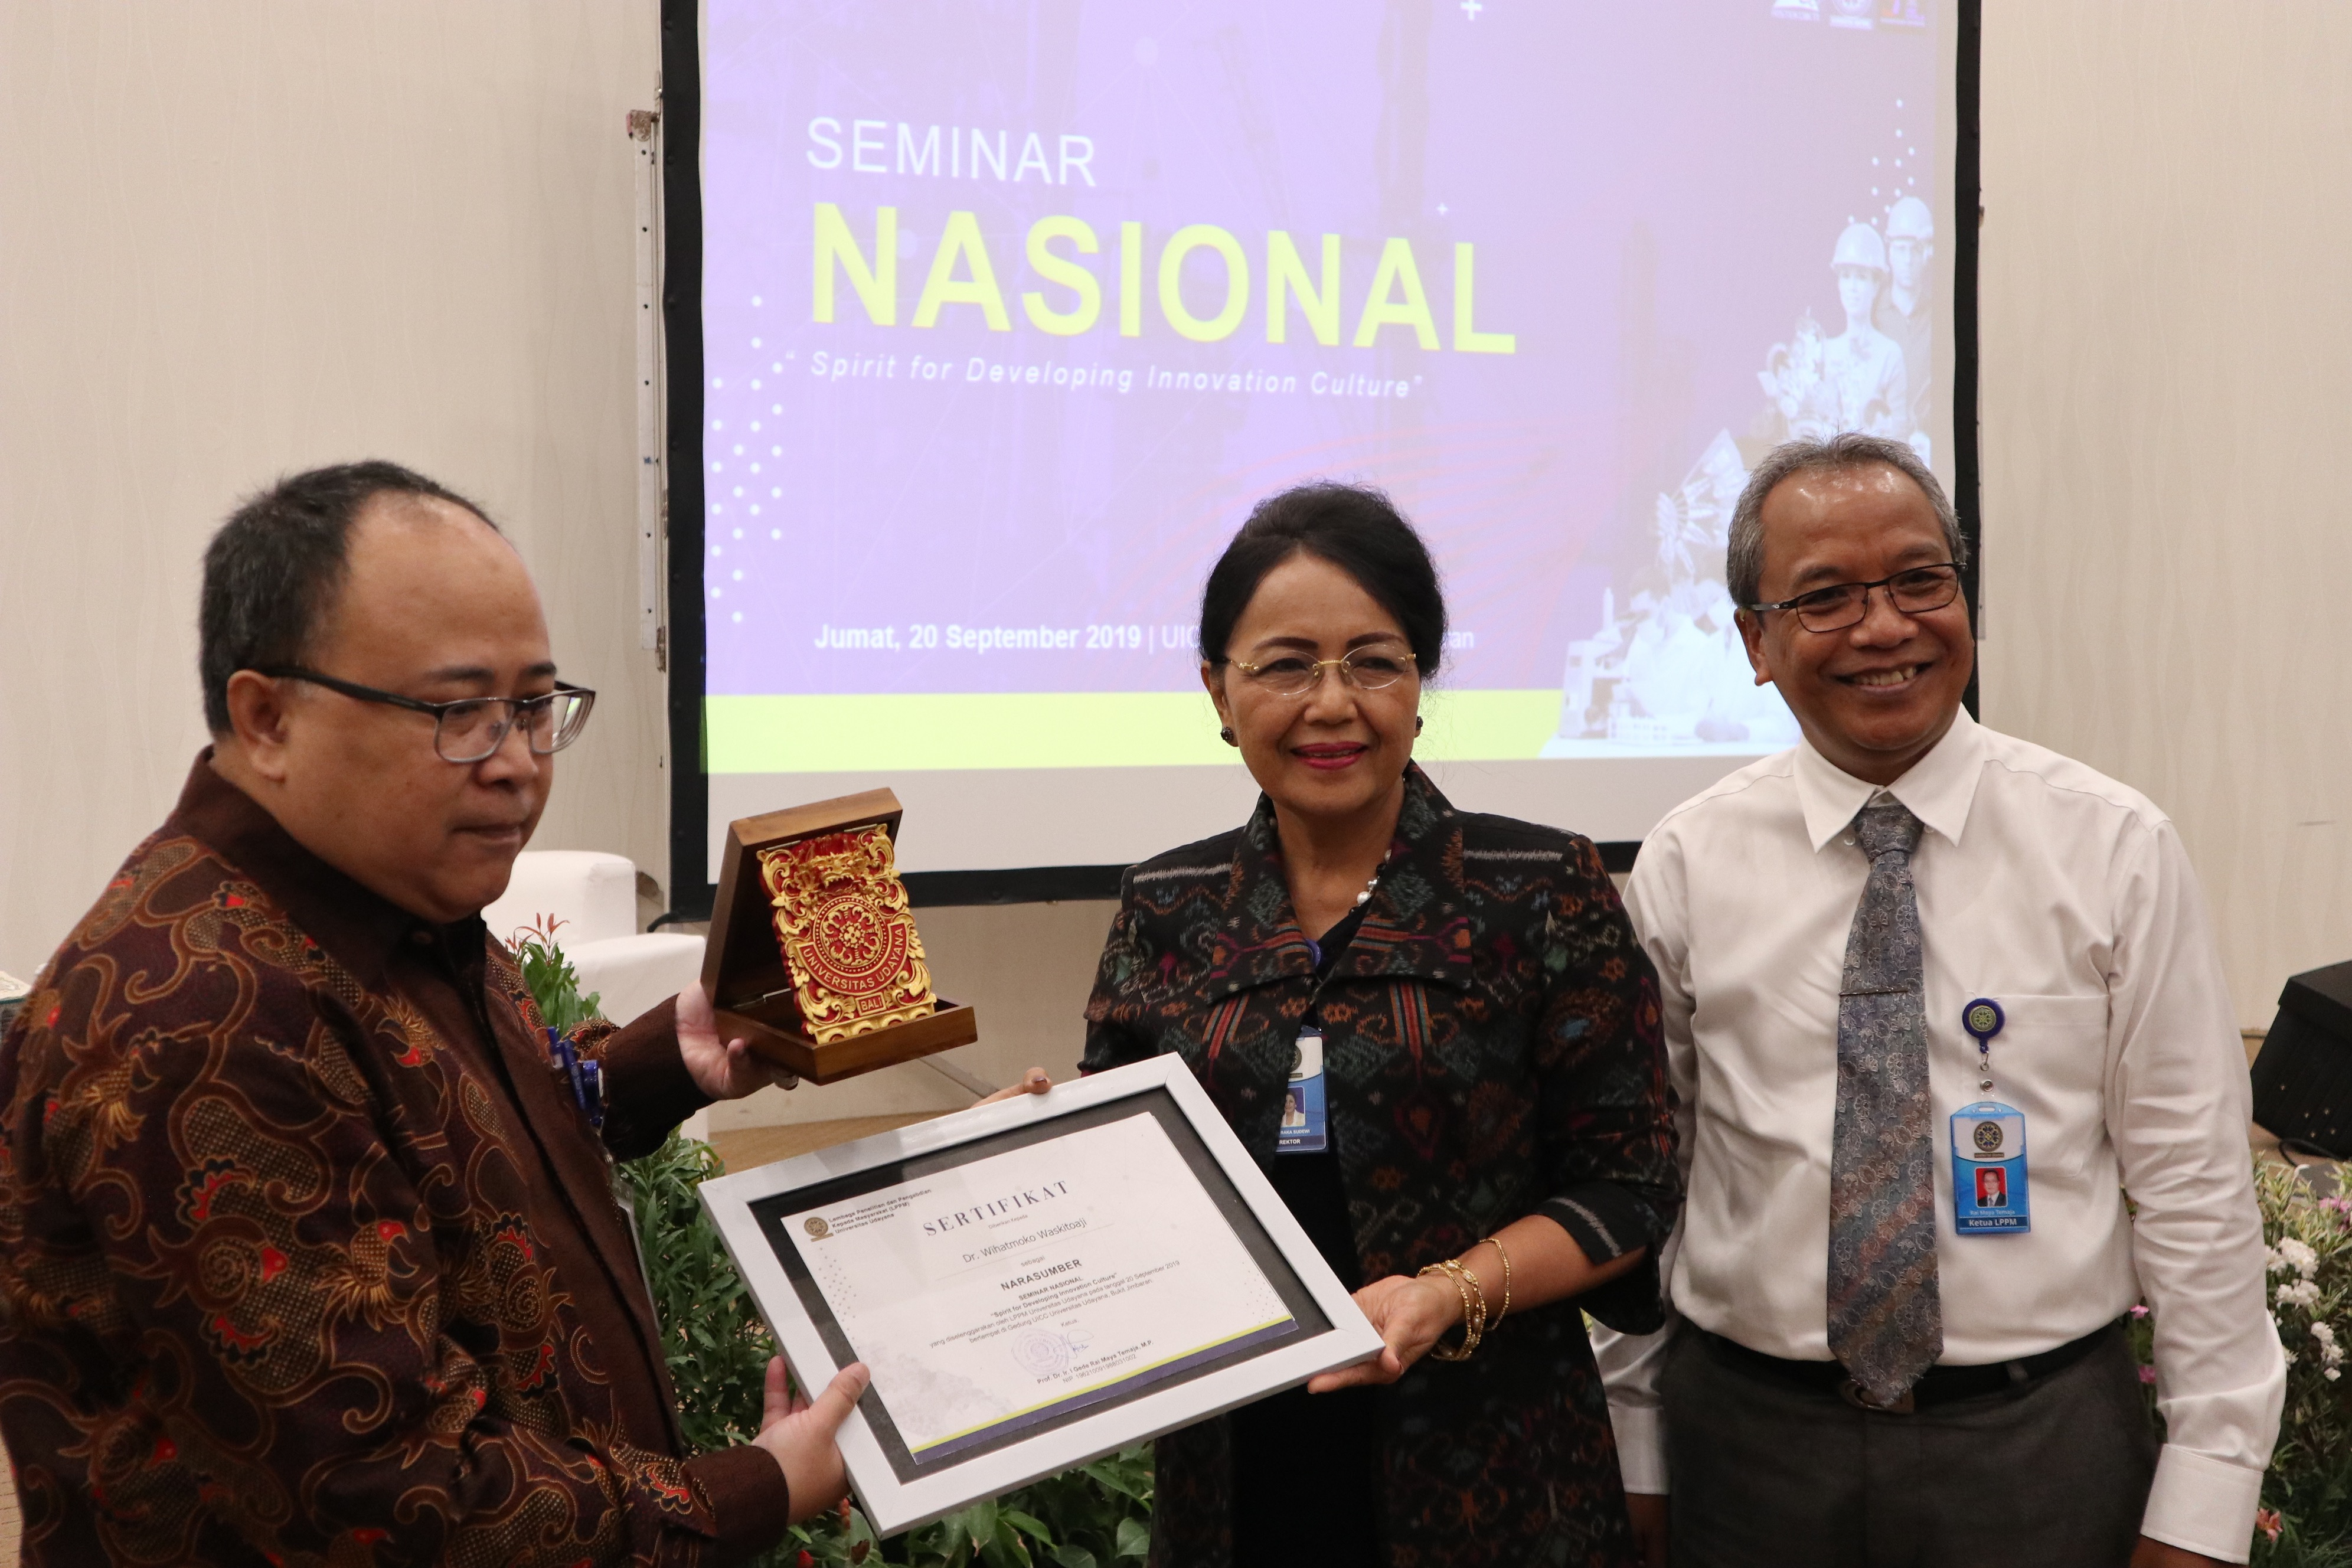 "LPPM UNUD Gelar Seminar Nasional ""Spirit for Developing Innovation Culture"""